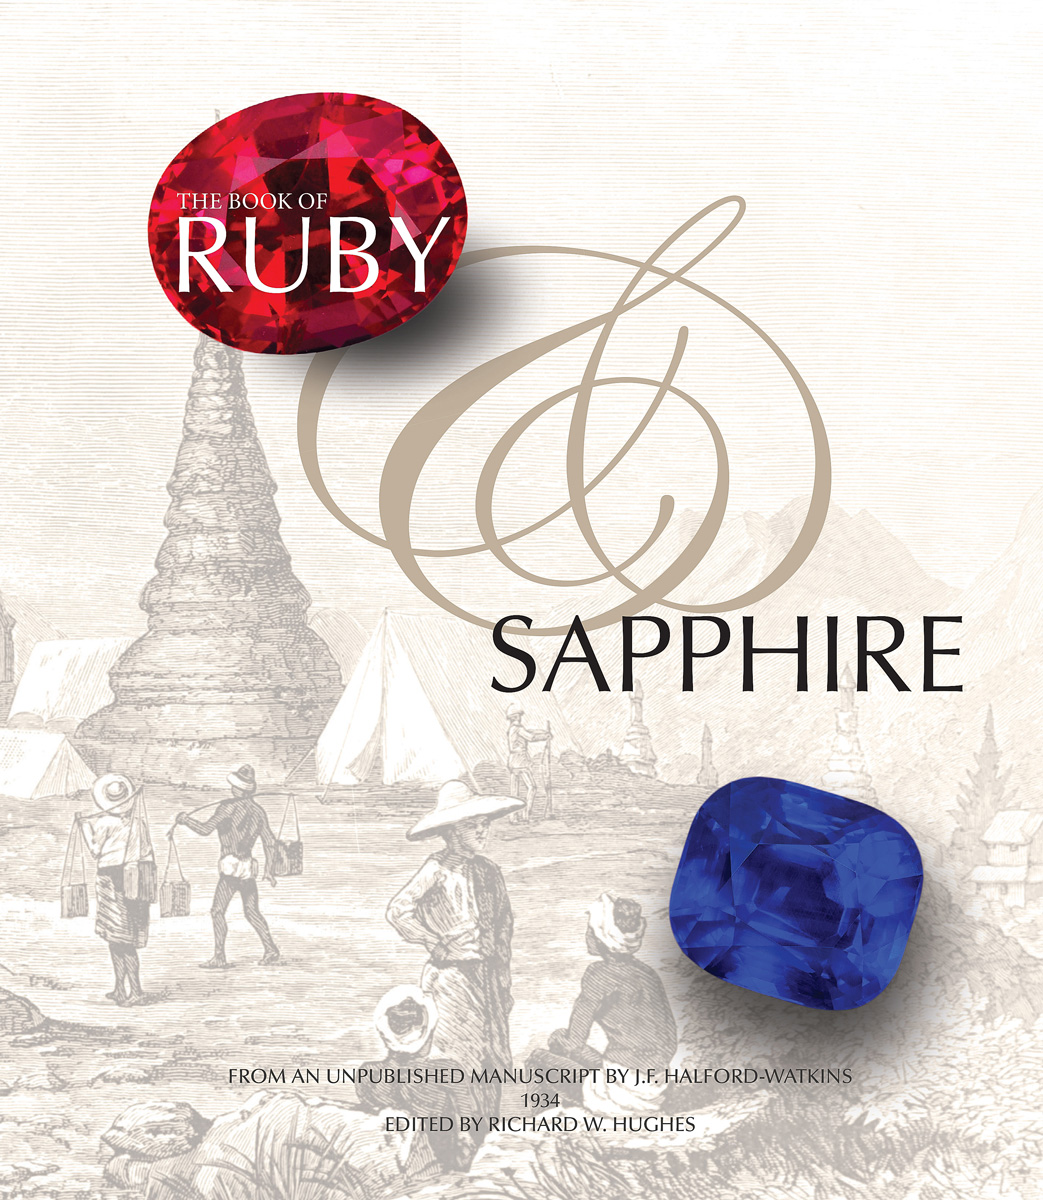 The cover of J.F. Halford-Watkins' Book of Ruby & Sapphire. This book, from an unpublished 1934 manuscript, was the first monograph devoted solely to the gemology of these gems. Sadly the author died before it could be published. The current author edited and published it in 2012.